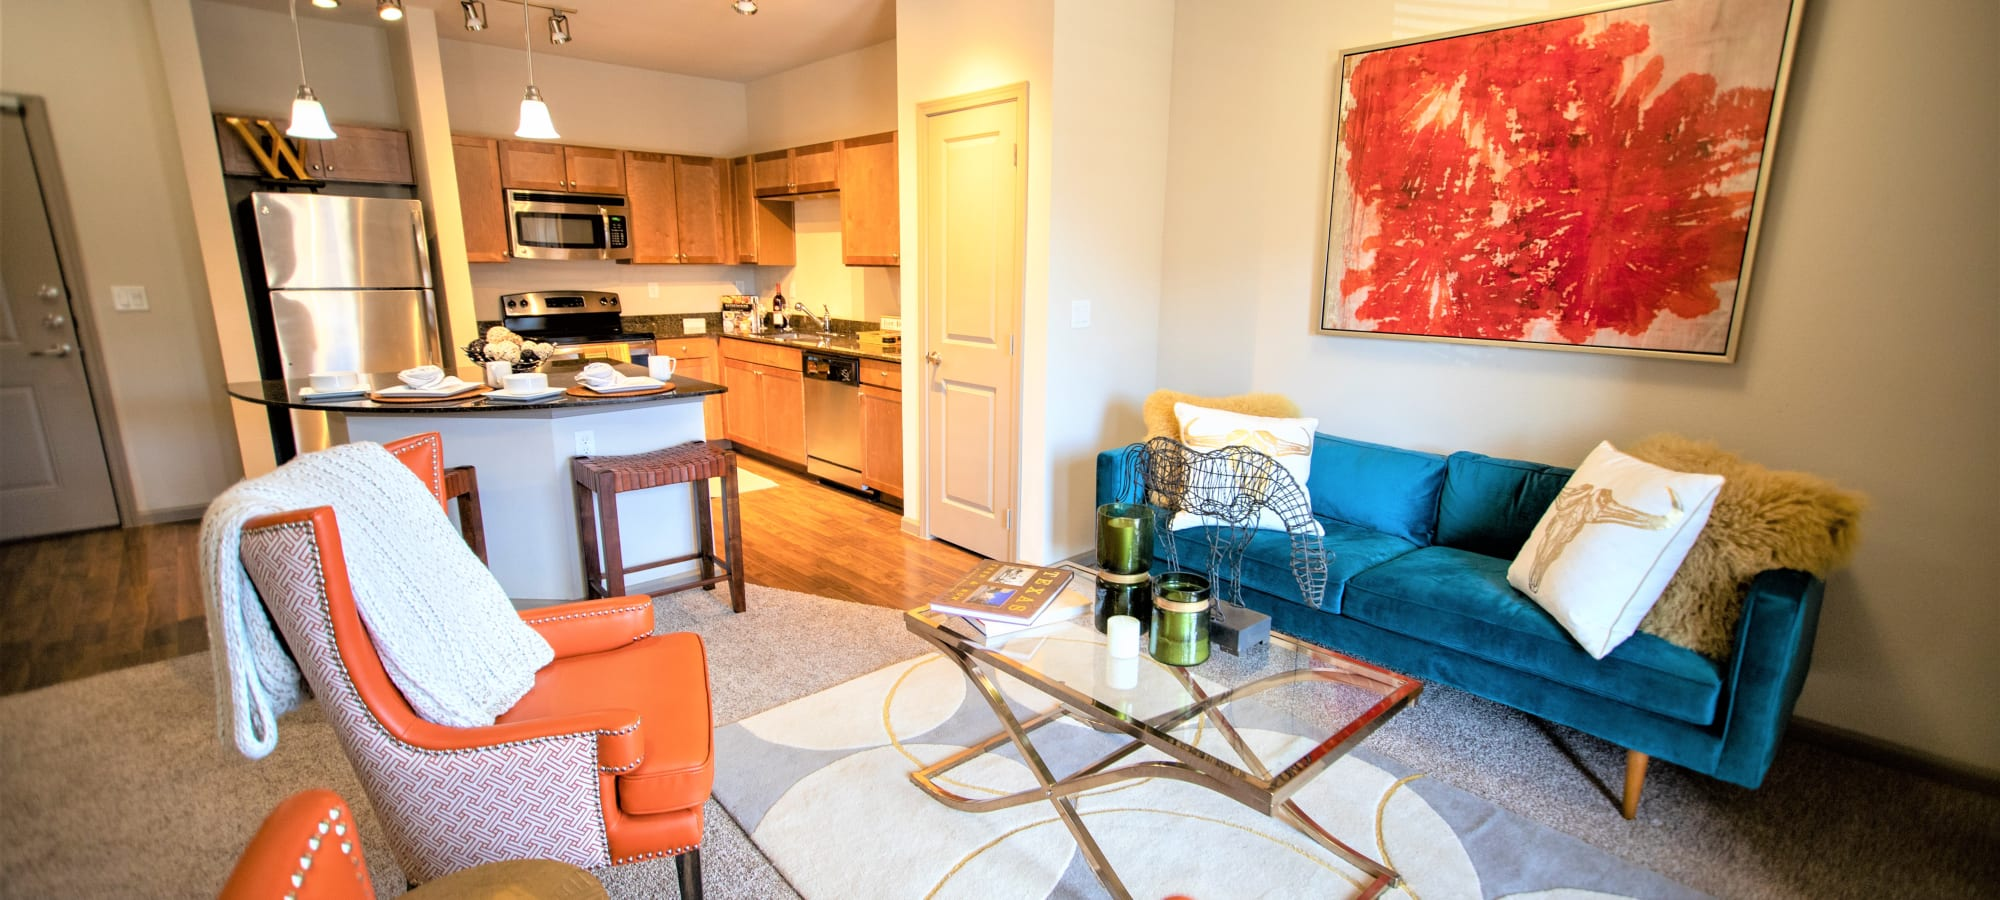 Enclave at Grapevine apartments in Grapevine, Texas